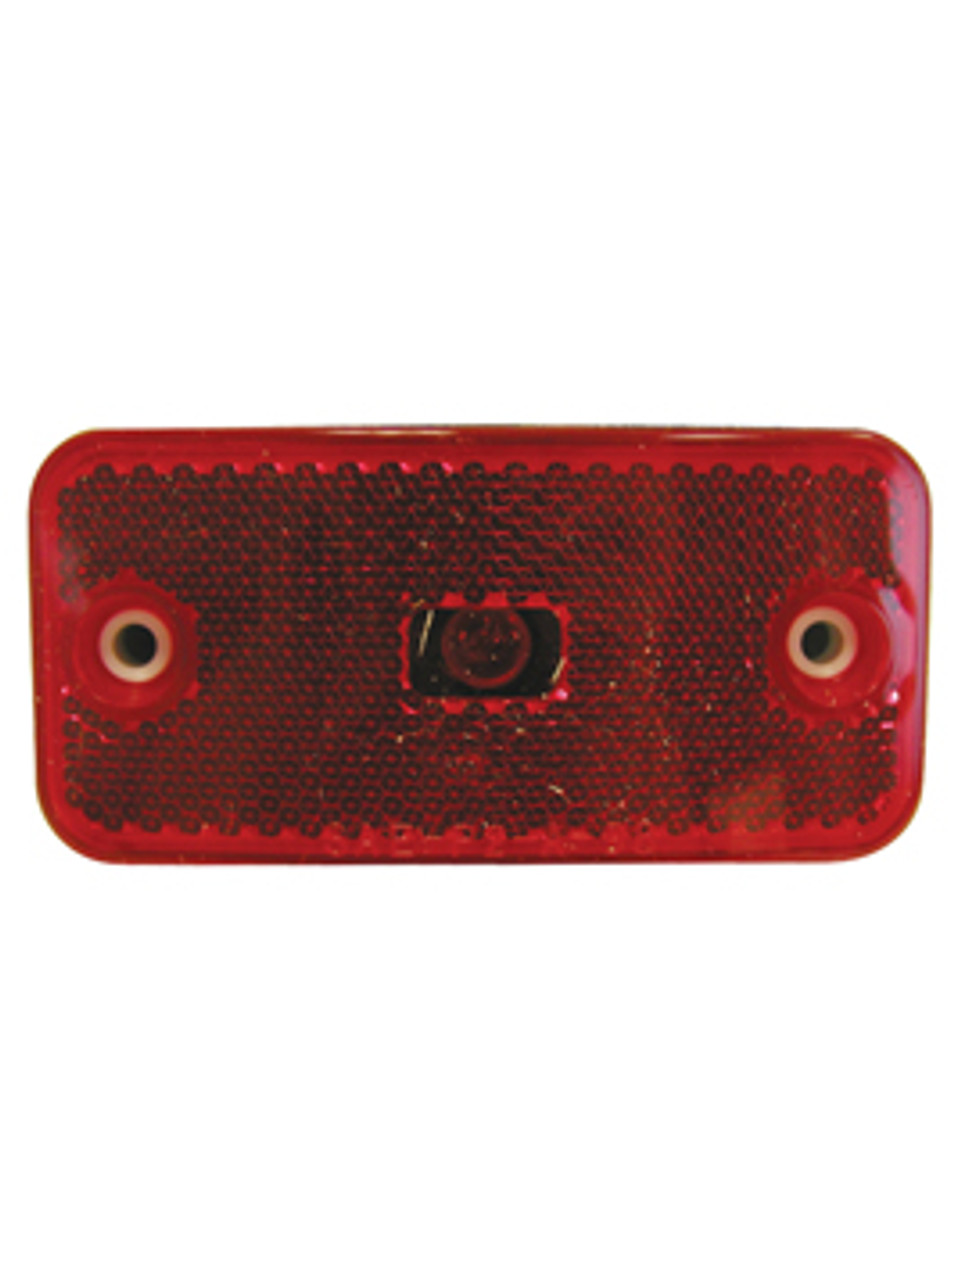 2548R --- Rectangular Clearance/Side Marker Light with Reflector